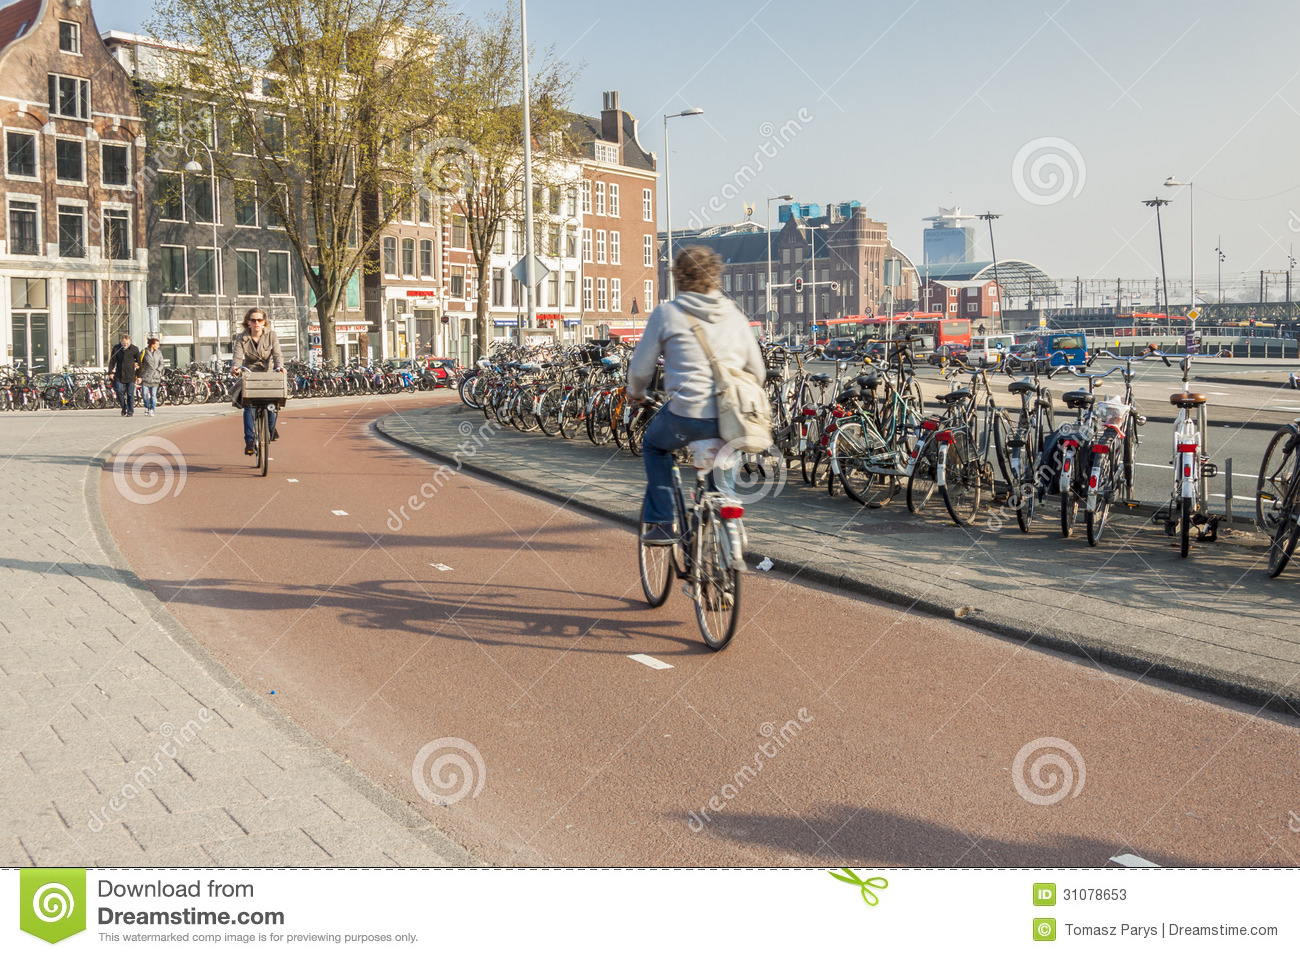 how to work in amsterdam